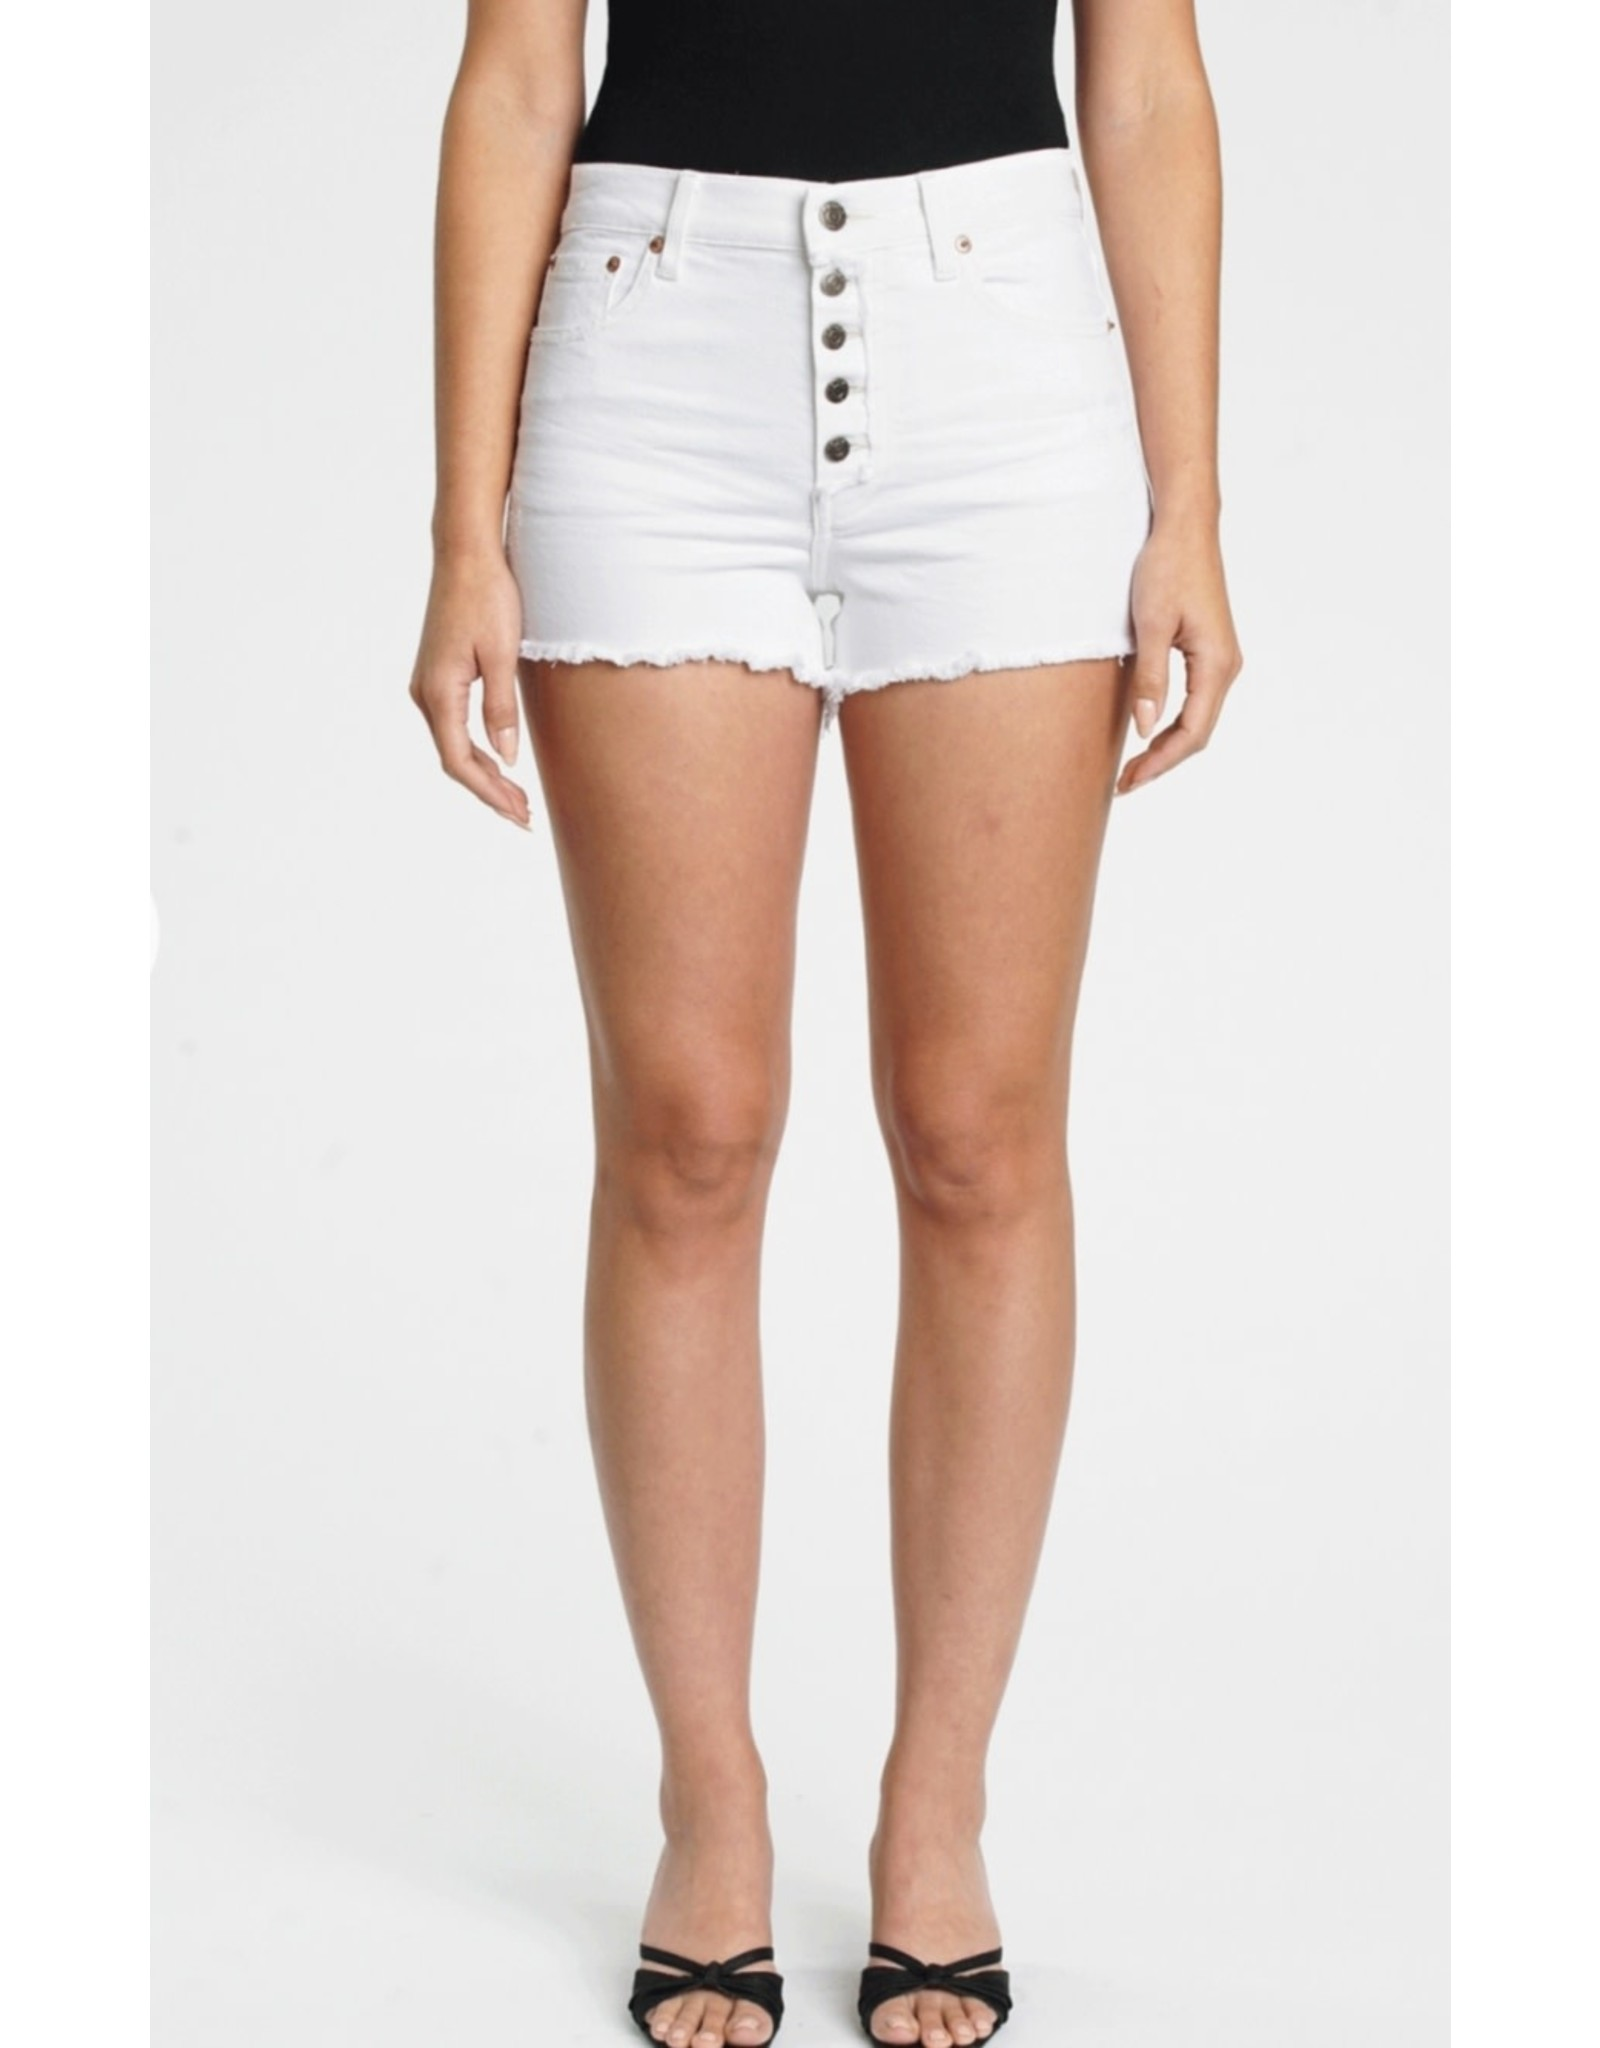 OVER THE EDGE SHORTS